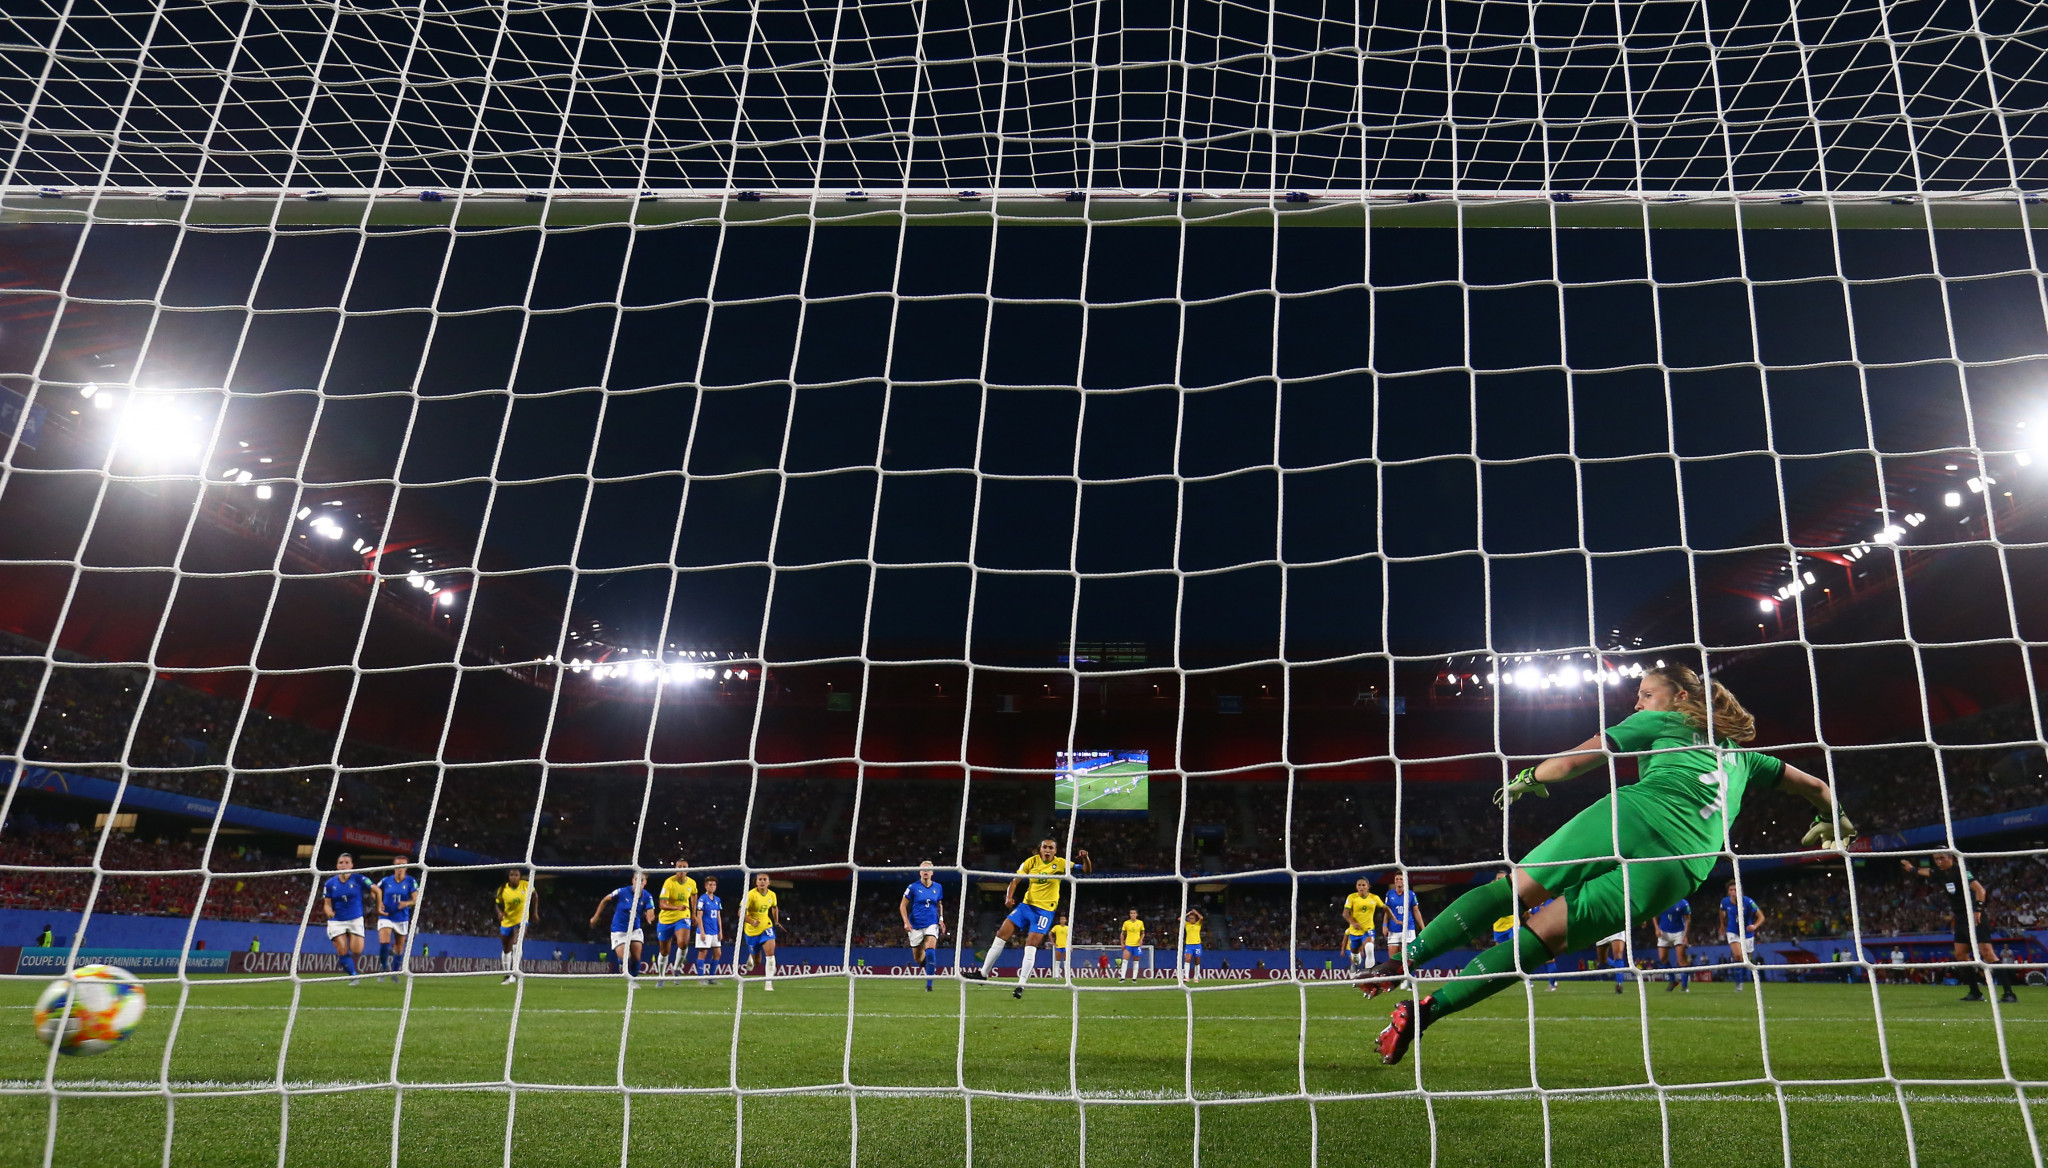 Brazil's Marta calmly converts her 17th Women's World Cup goal from the penalty spot against Italy ©Getty Images